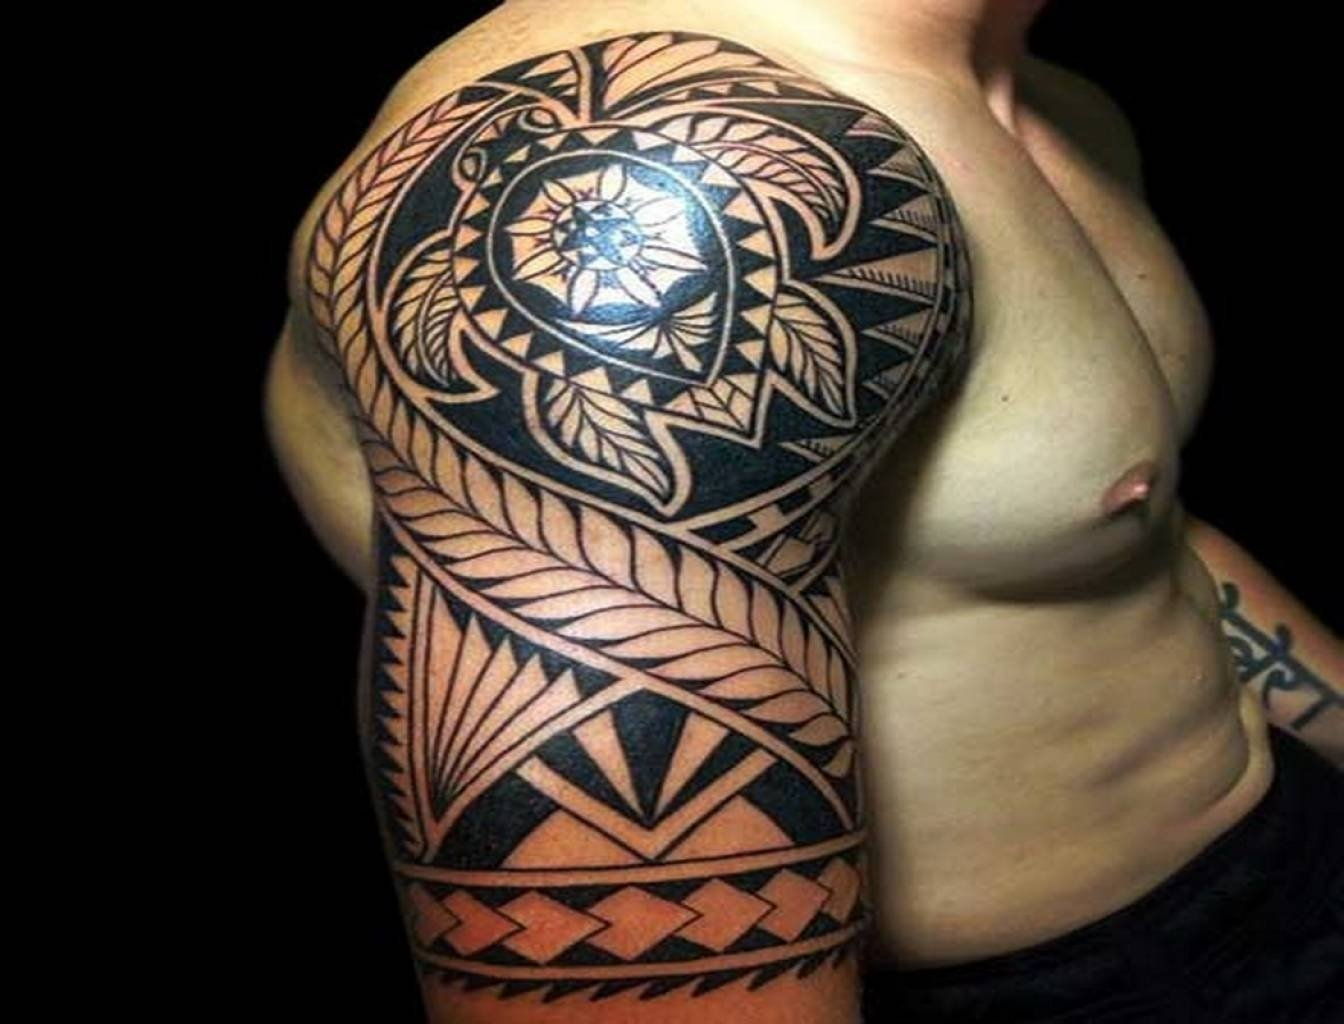 10 Famous Religious Tattoo Ideas For Men amazing small knot religious tattoos ideas design idea for men and 2021